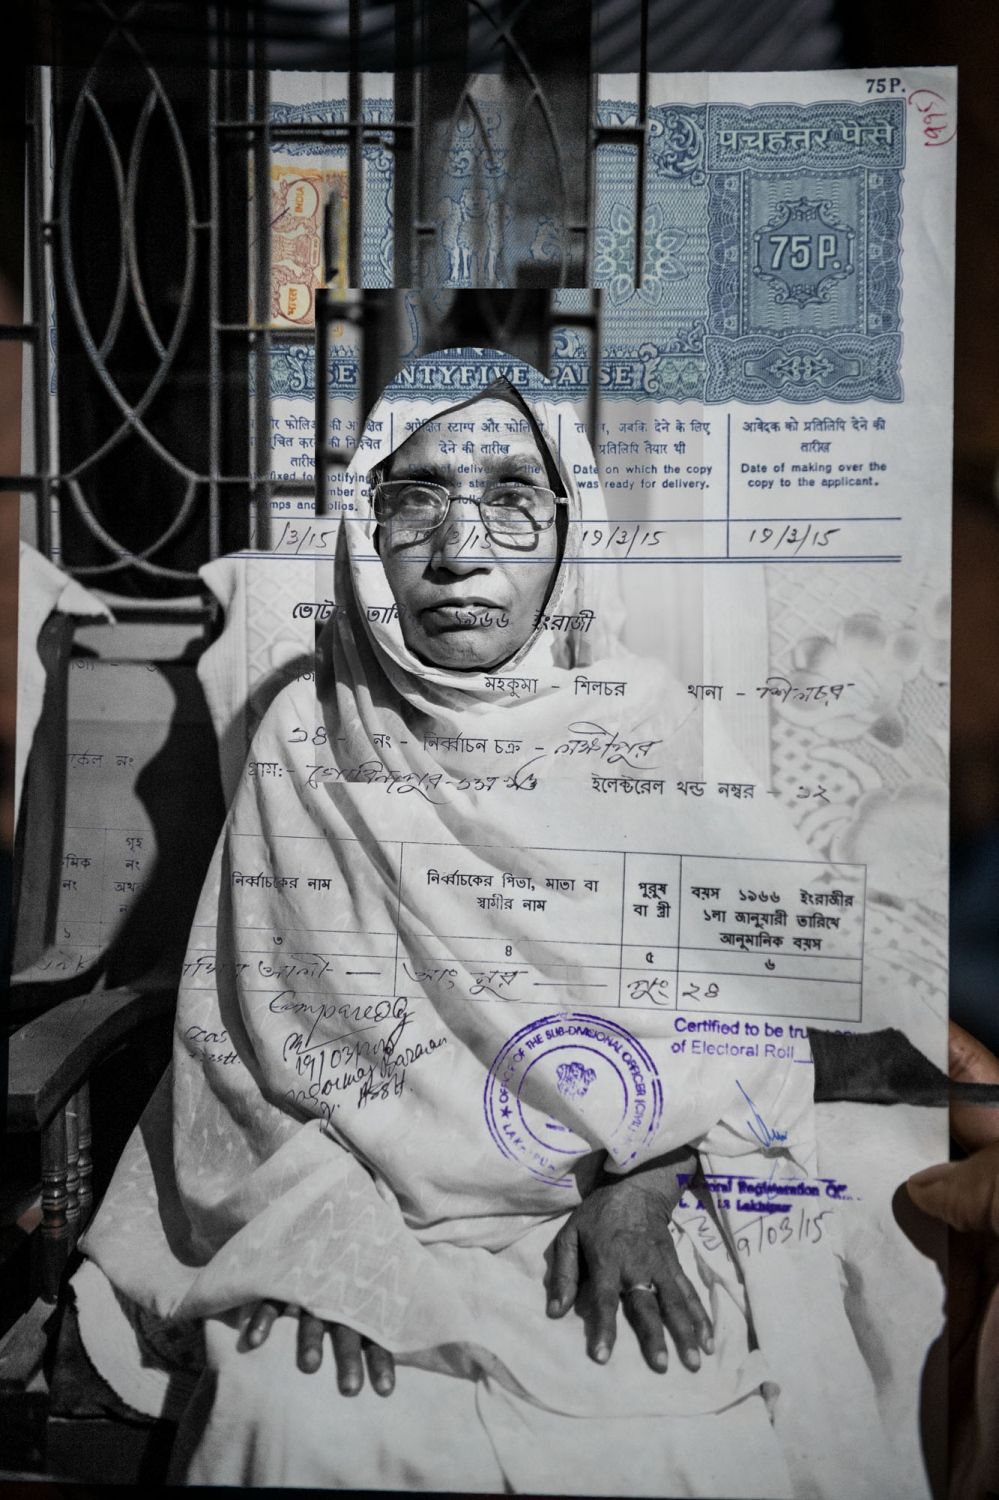 Fanigun Nessa, 67, has document proving both her father and herself voted in 1966, but still she is considered a foreigner and is not on the NRC list.